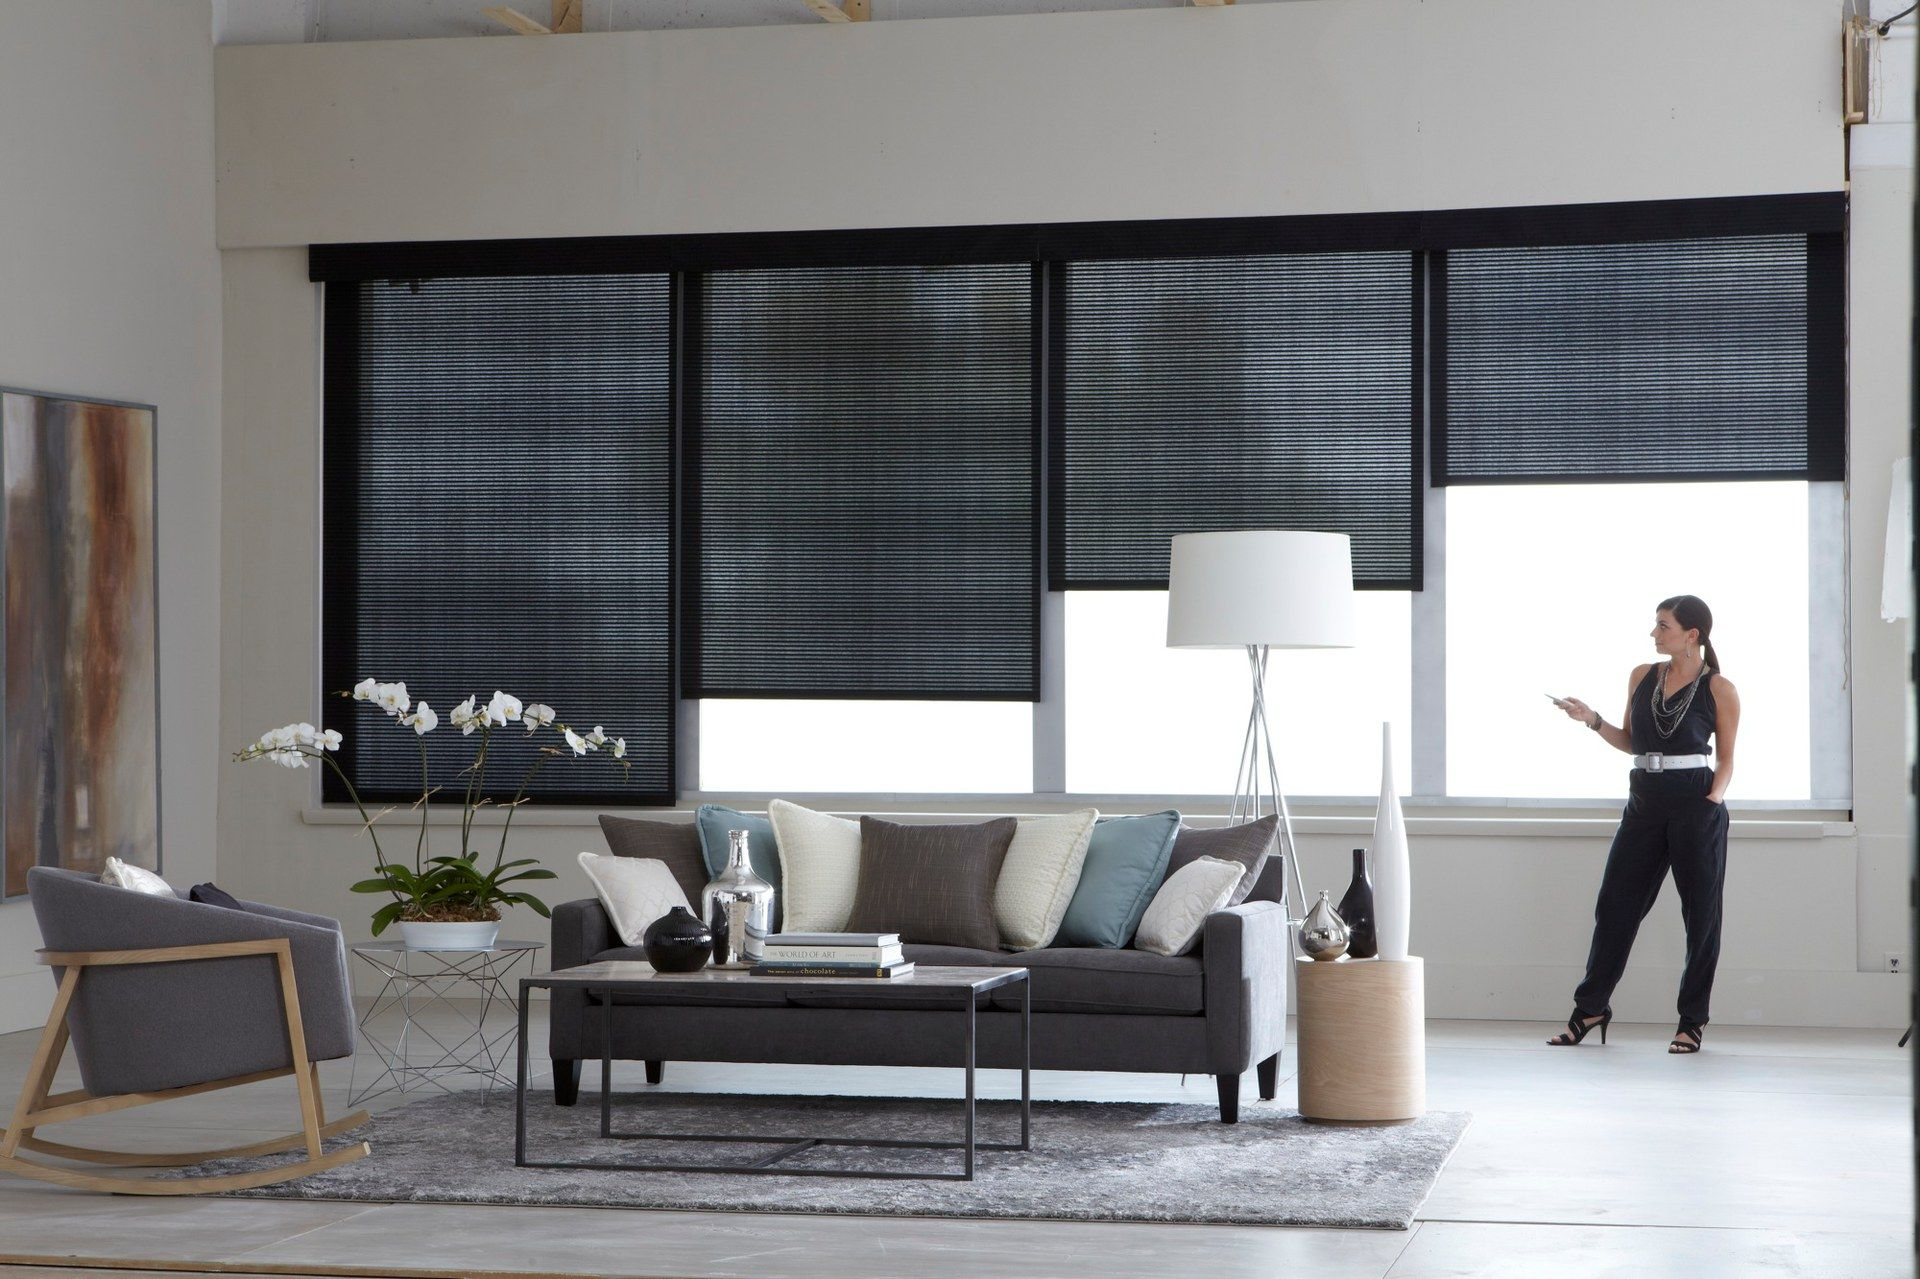 Motorized solar shades are easy to operate roller for Motorized solar shades for windows